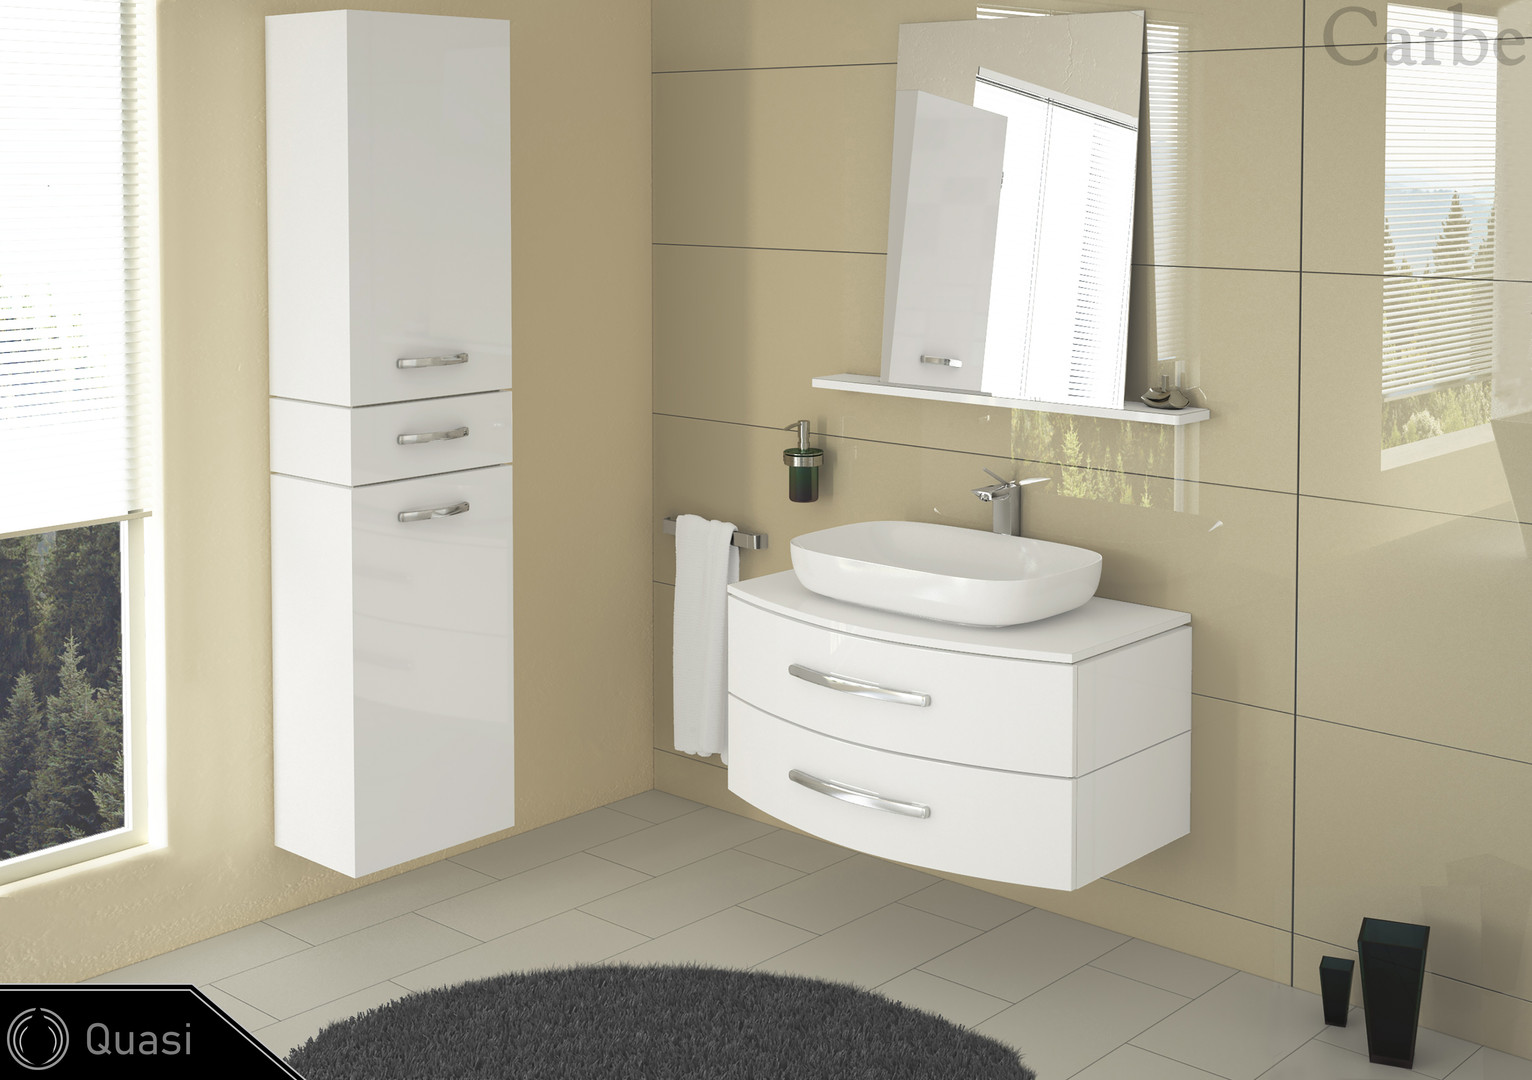 Quasi - Snow White HG, Arctic White HG, Ceramic Washbasin, Soft Closing